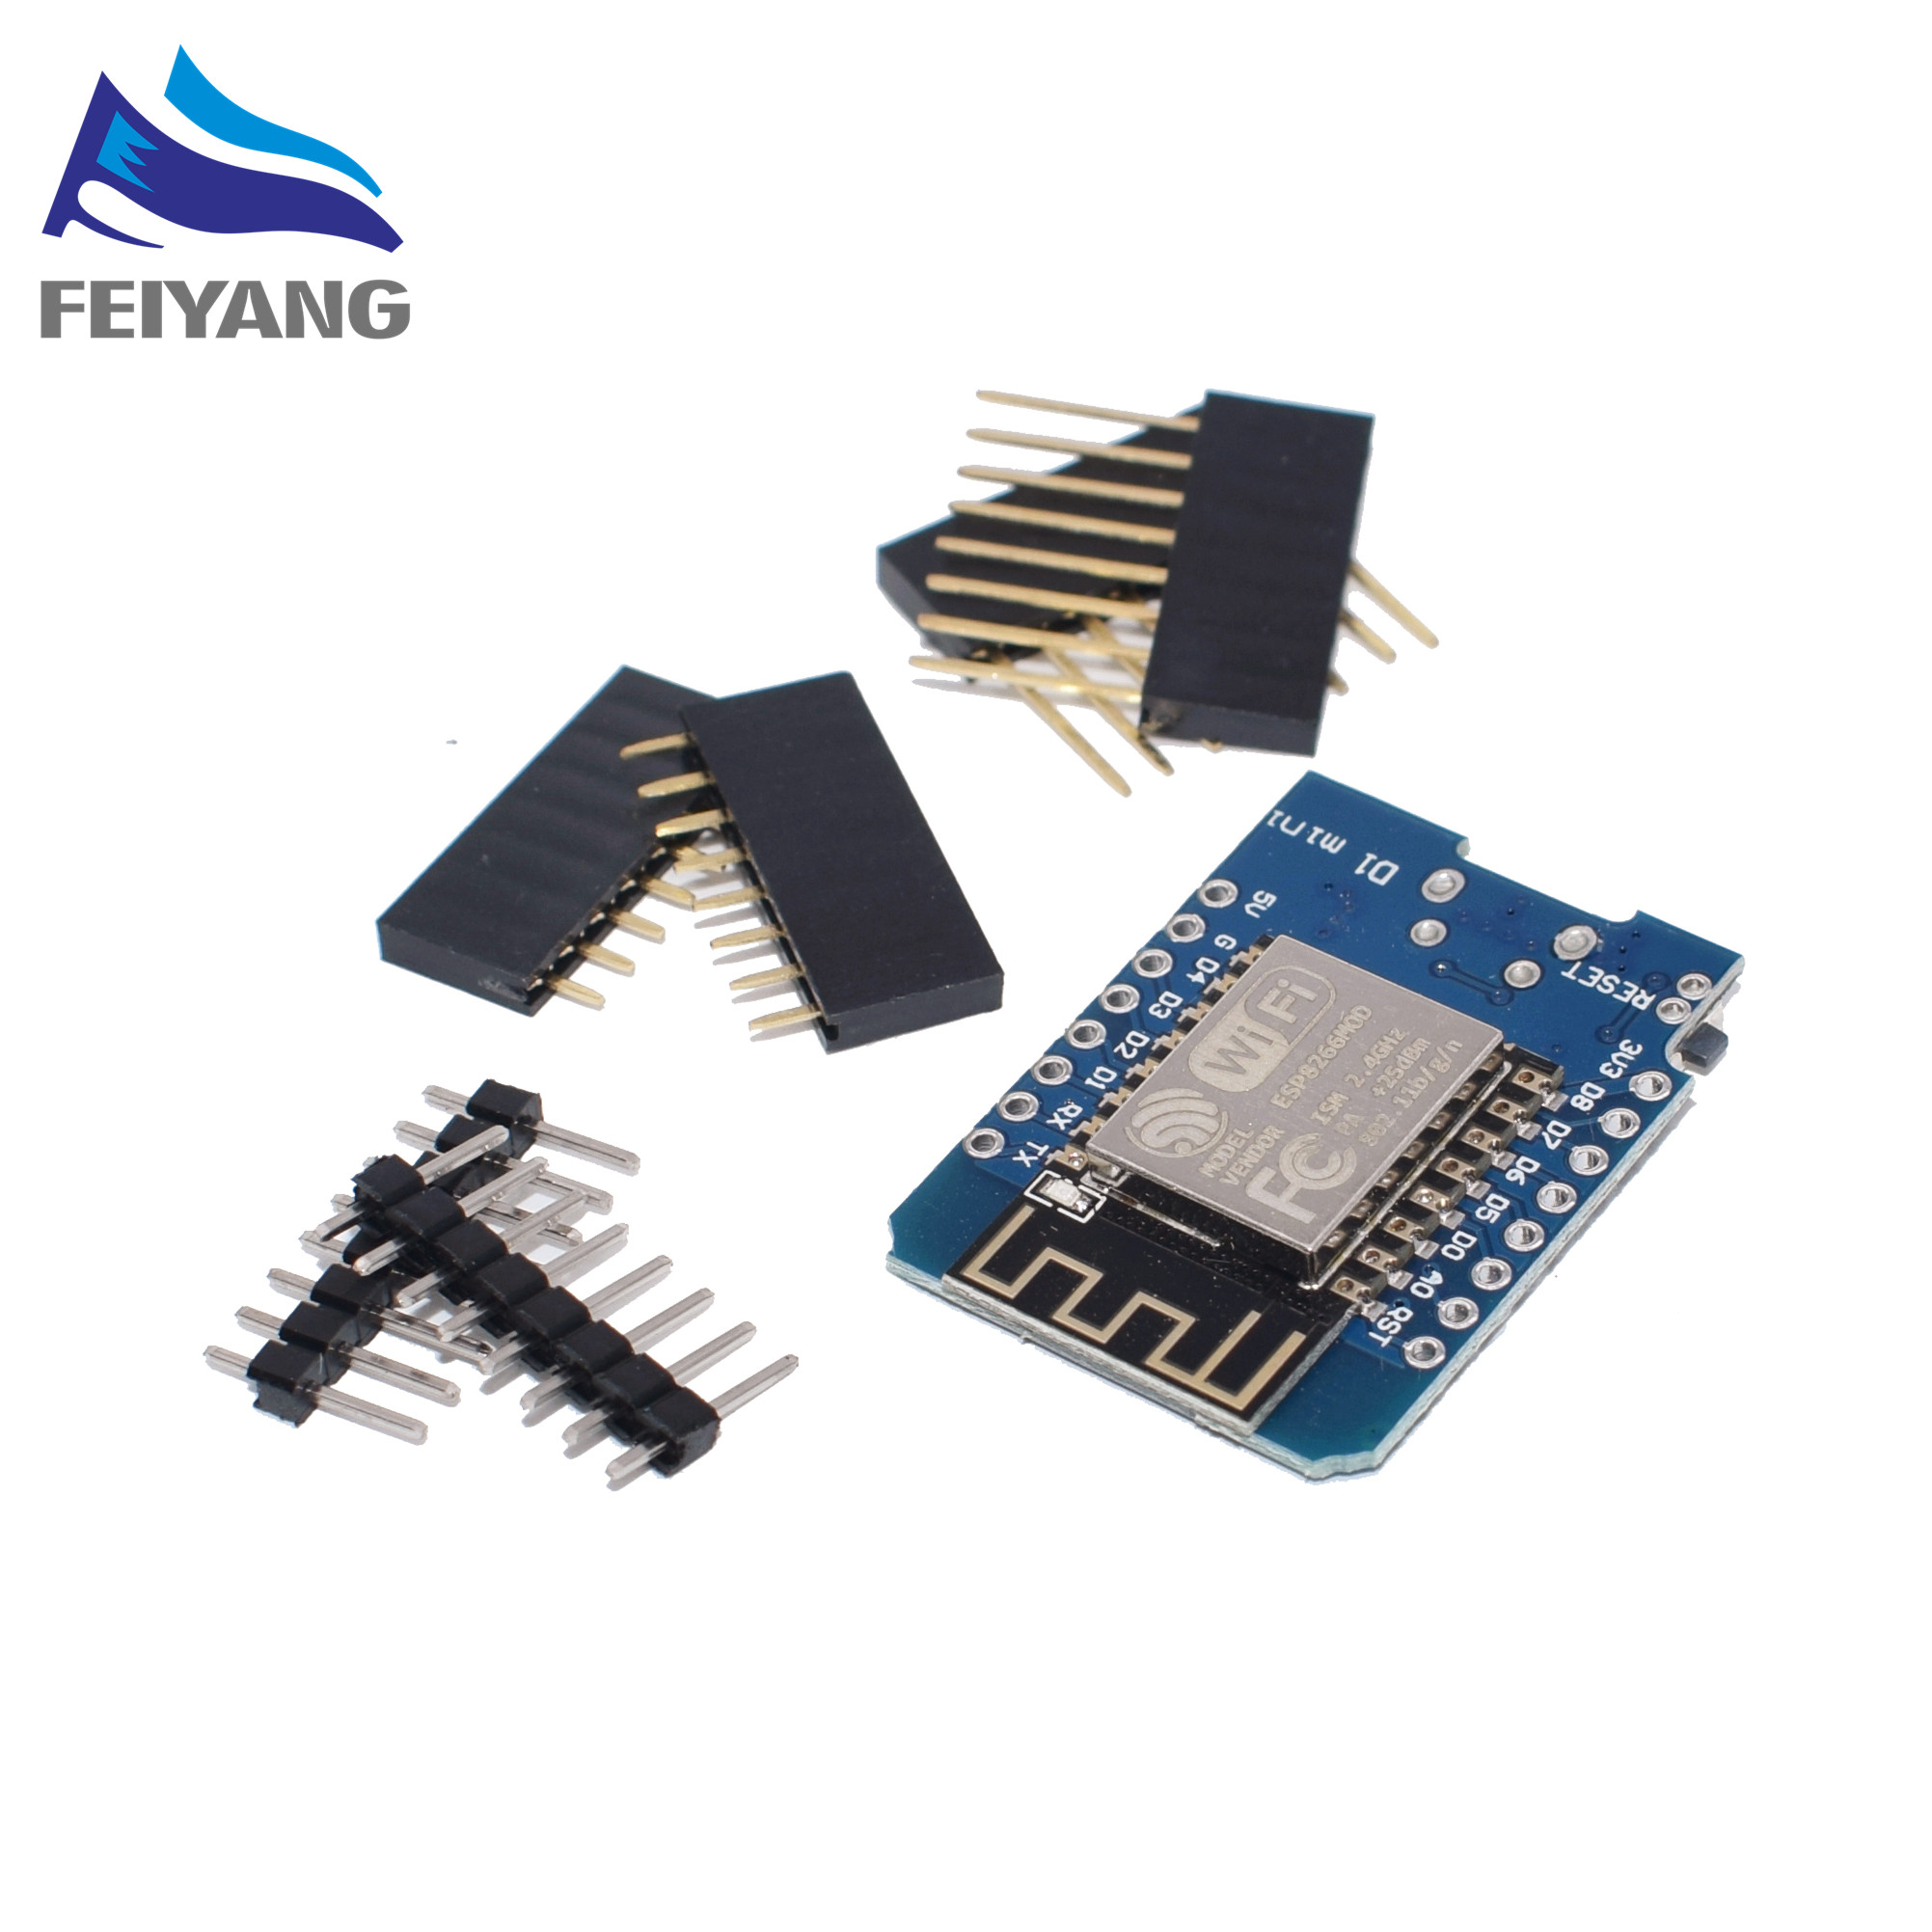 10pcs D1 PRO/Battery Shield/ D1 Mini - Mini NodeMcu 4M Bytes Lua WIFI Internet Of Things Development Board Based ESP8266 WeMos